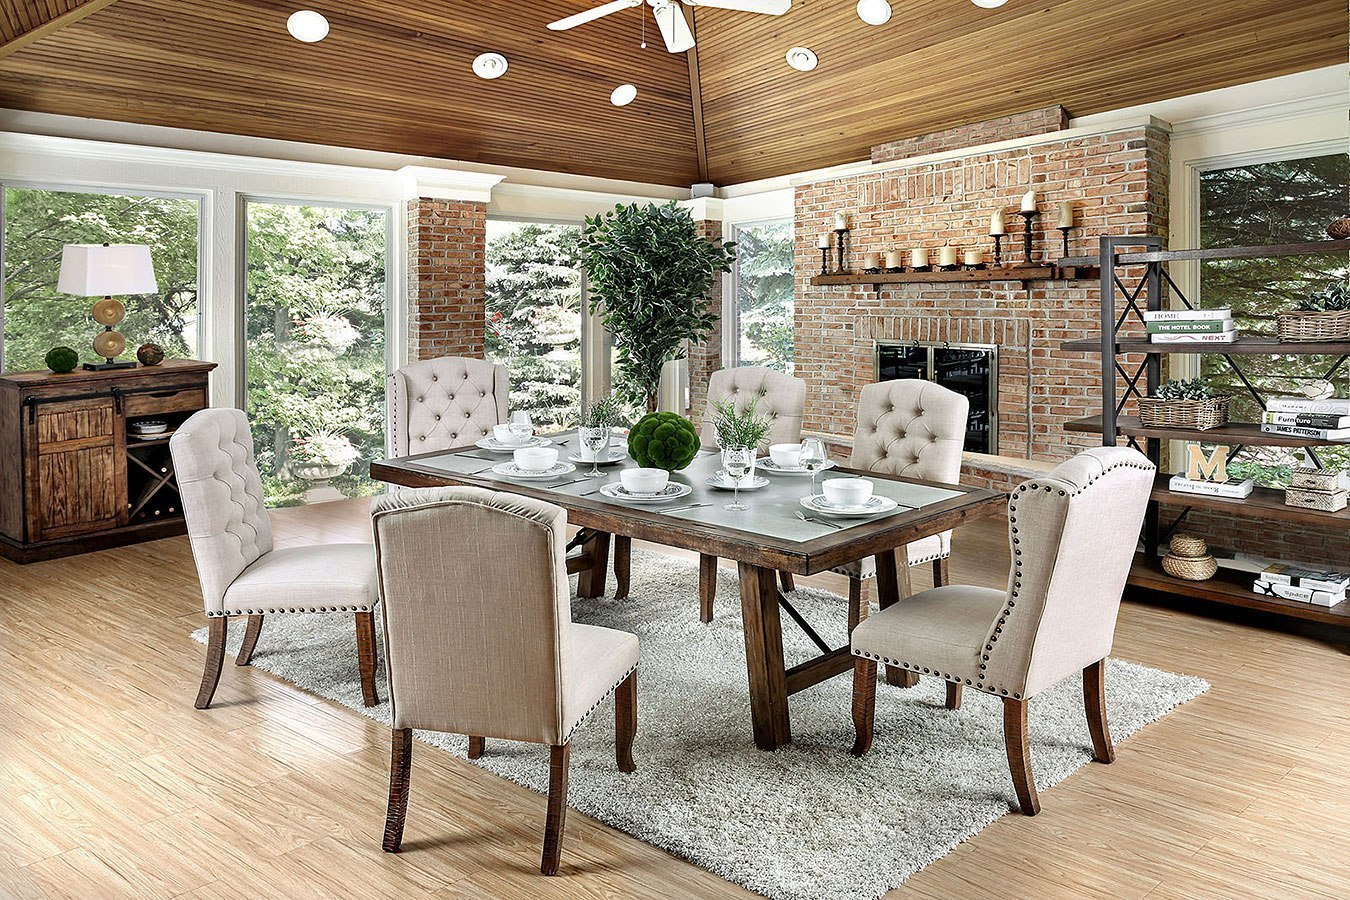 Colette Dining Room Set W/ Ivory Chairs